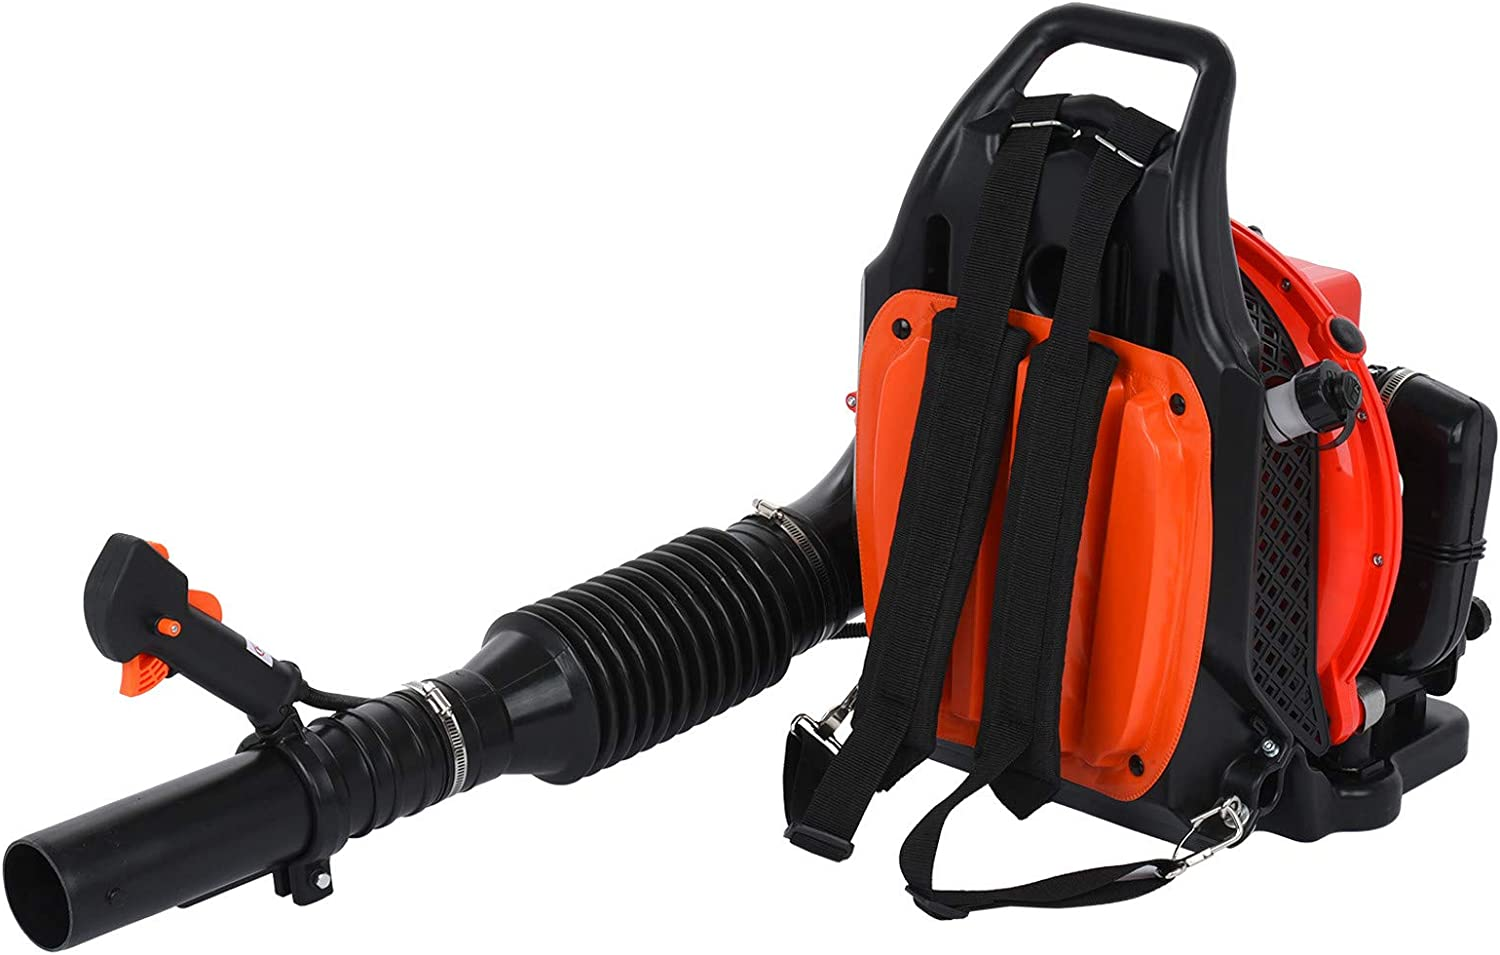 Popular brand in the Tucson Mall world JOSHUA 63cc Petrol Backpack Leaf -280 Extremely Powerful Blower